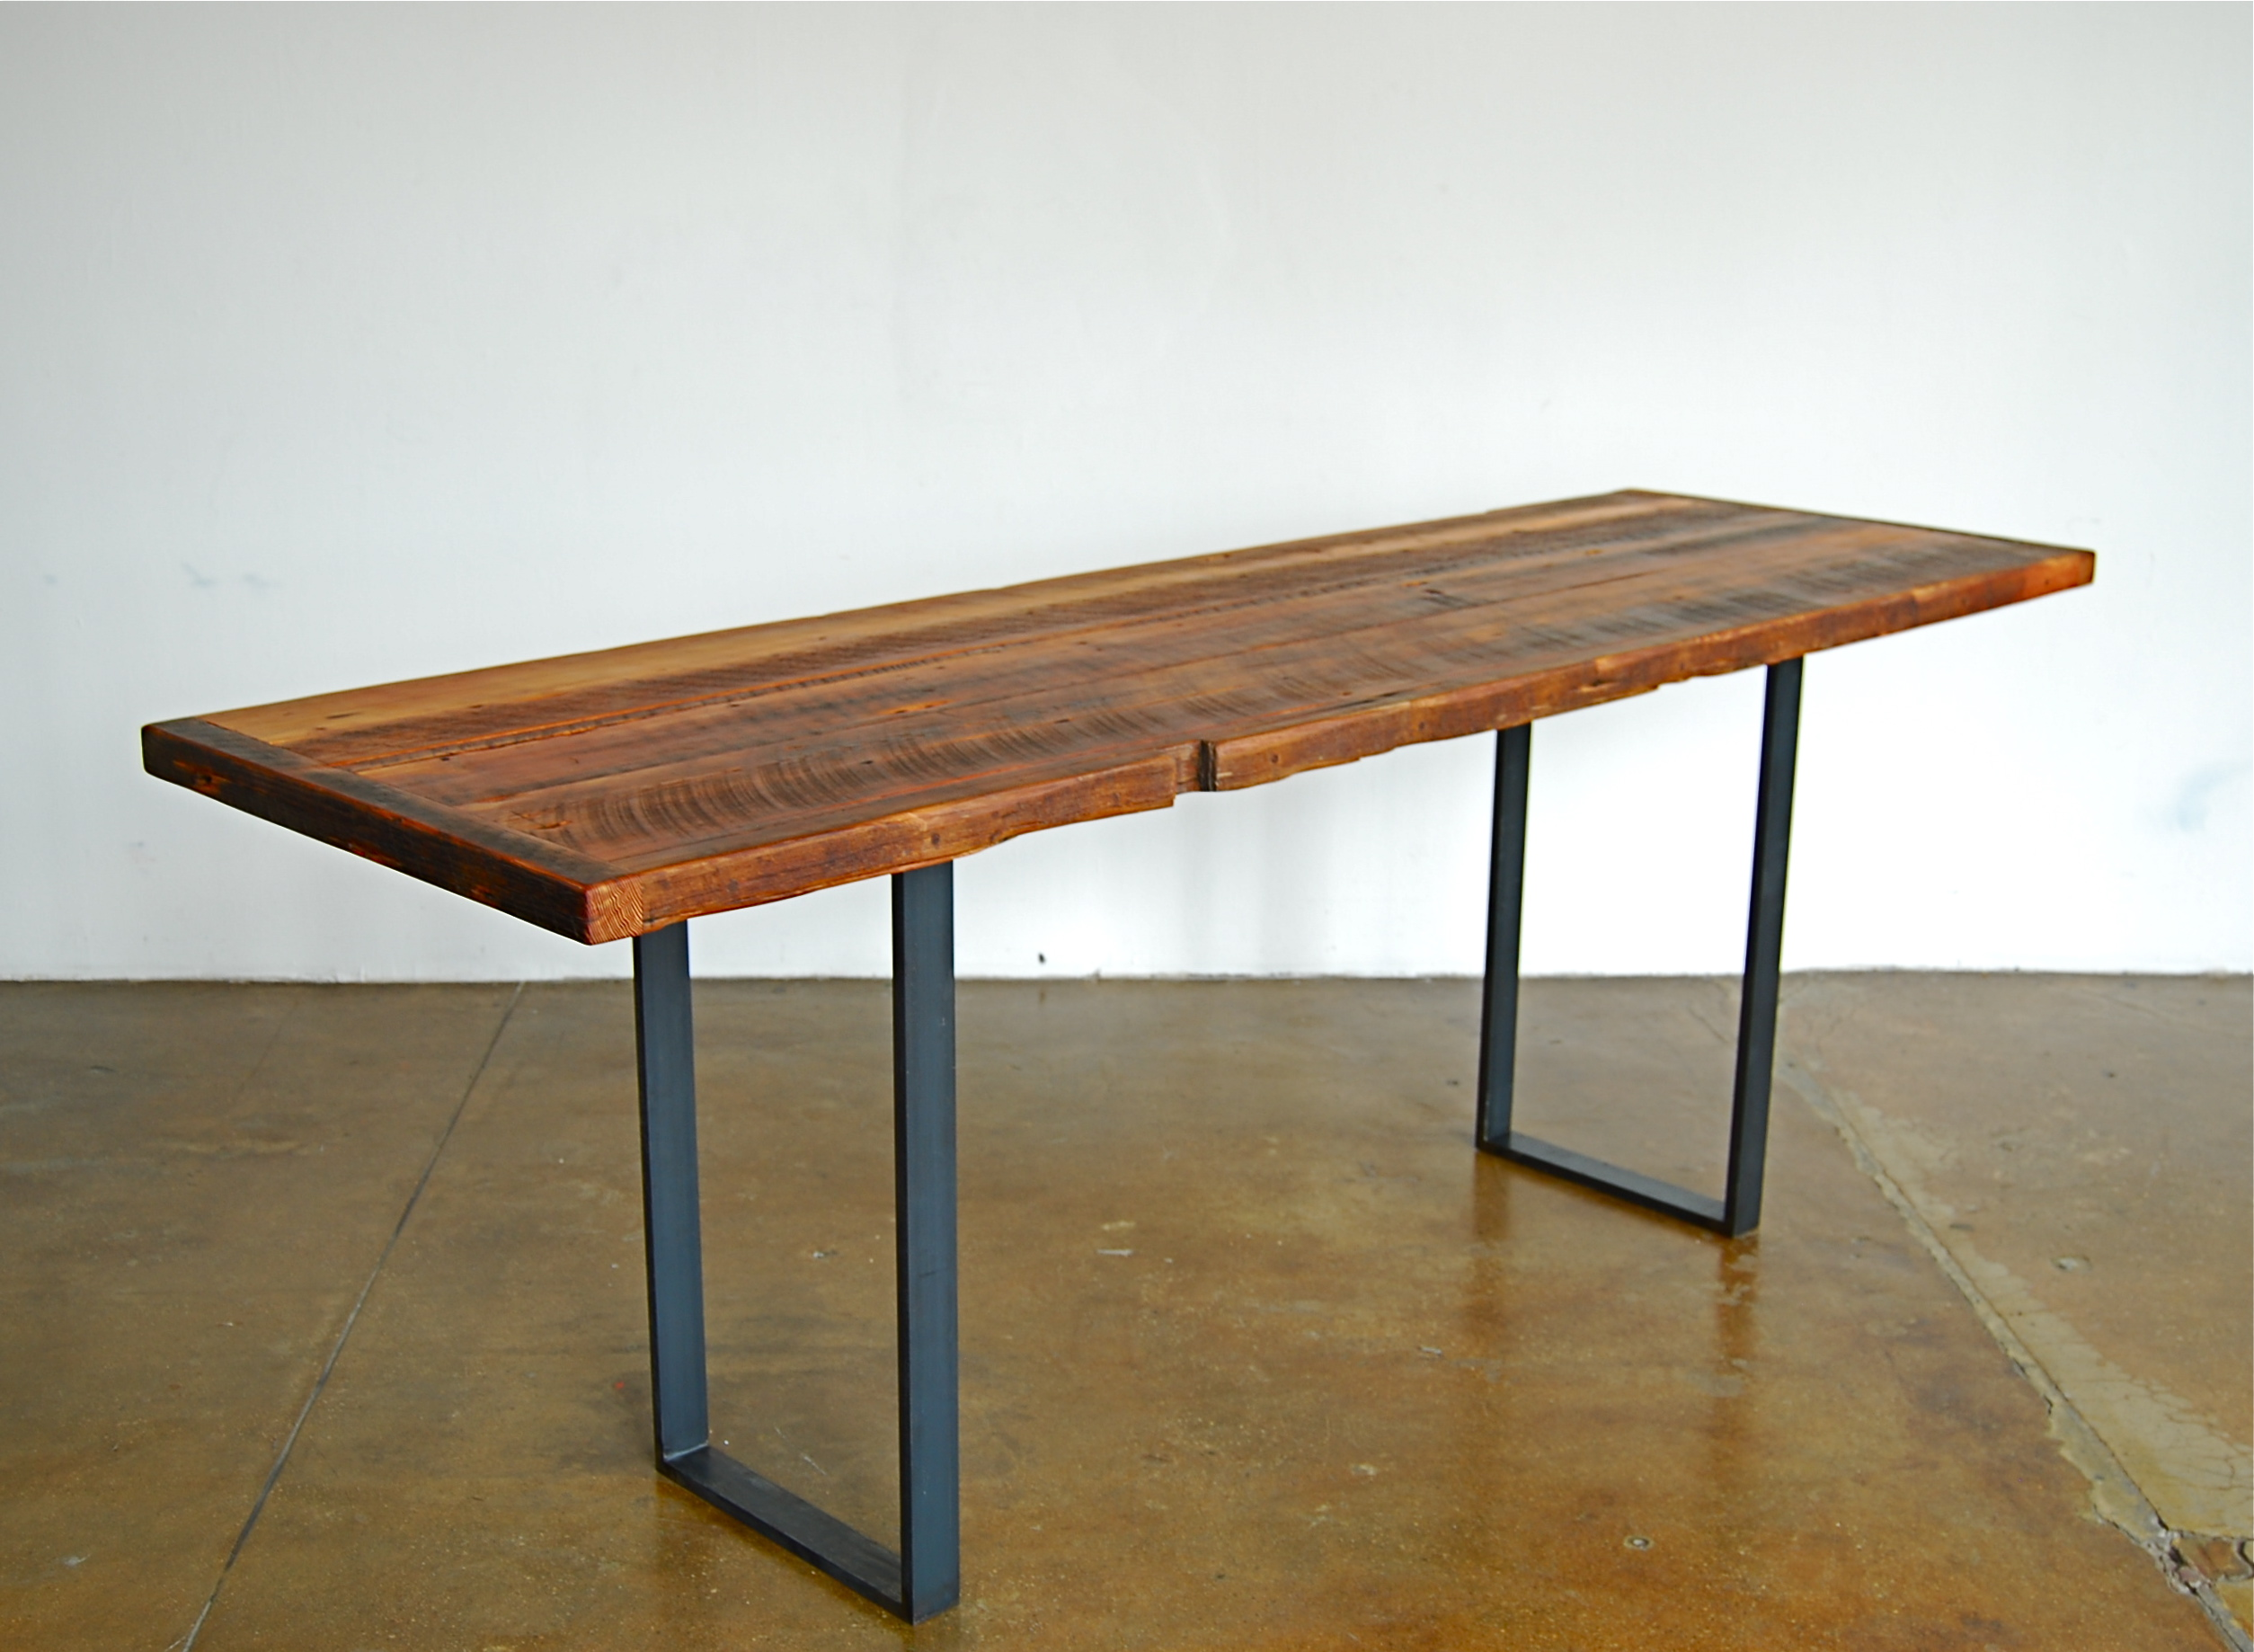 Dwelling Dining Tables On Pinterest